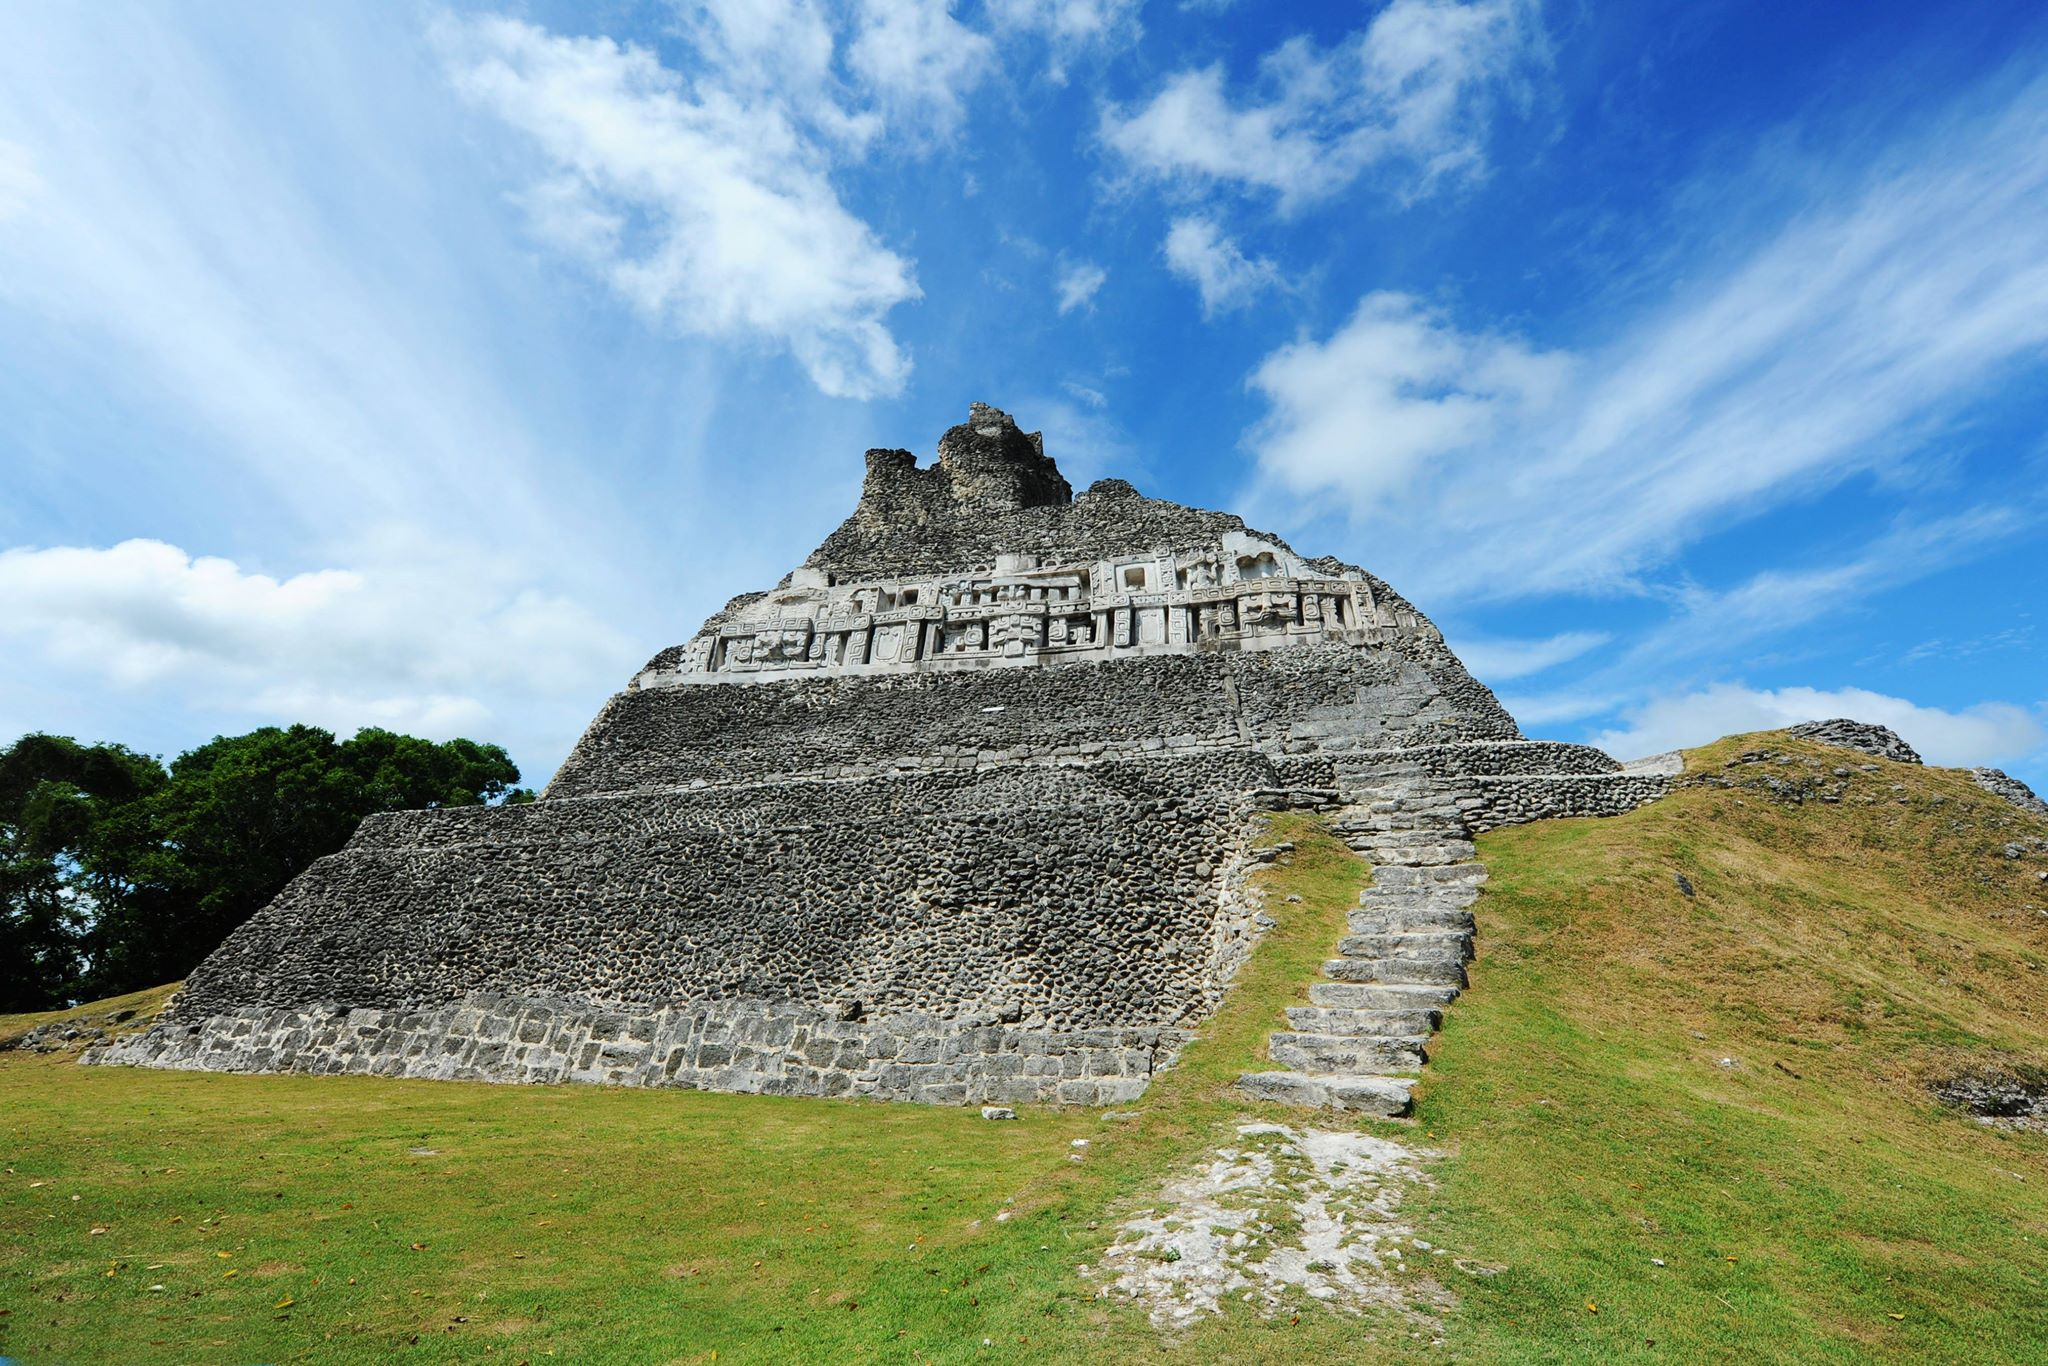 National Geographic Travel Recommends Visiting Belize in 2018